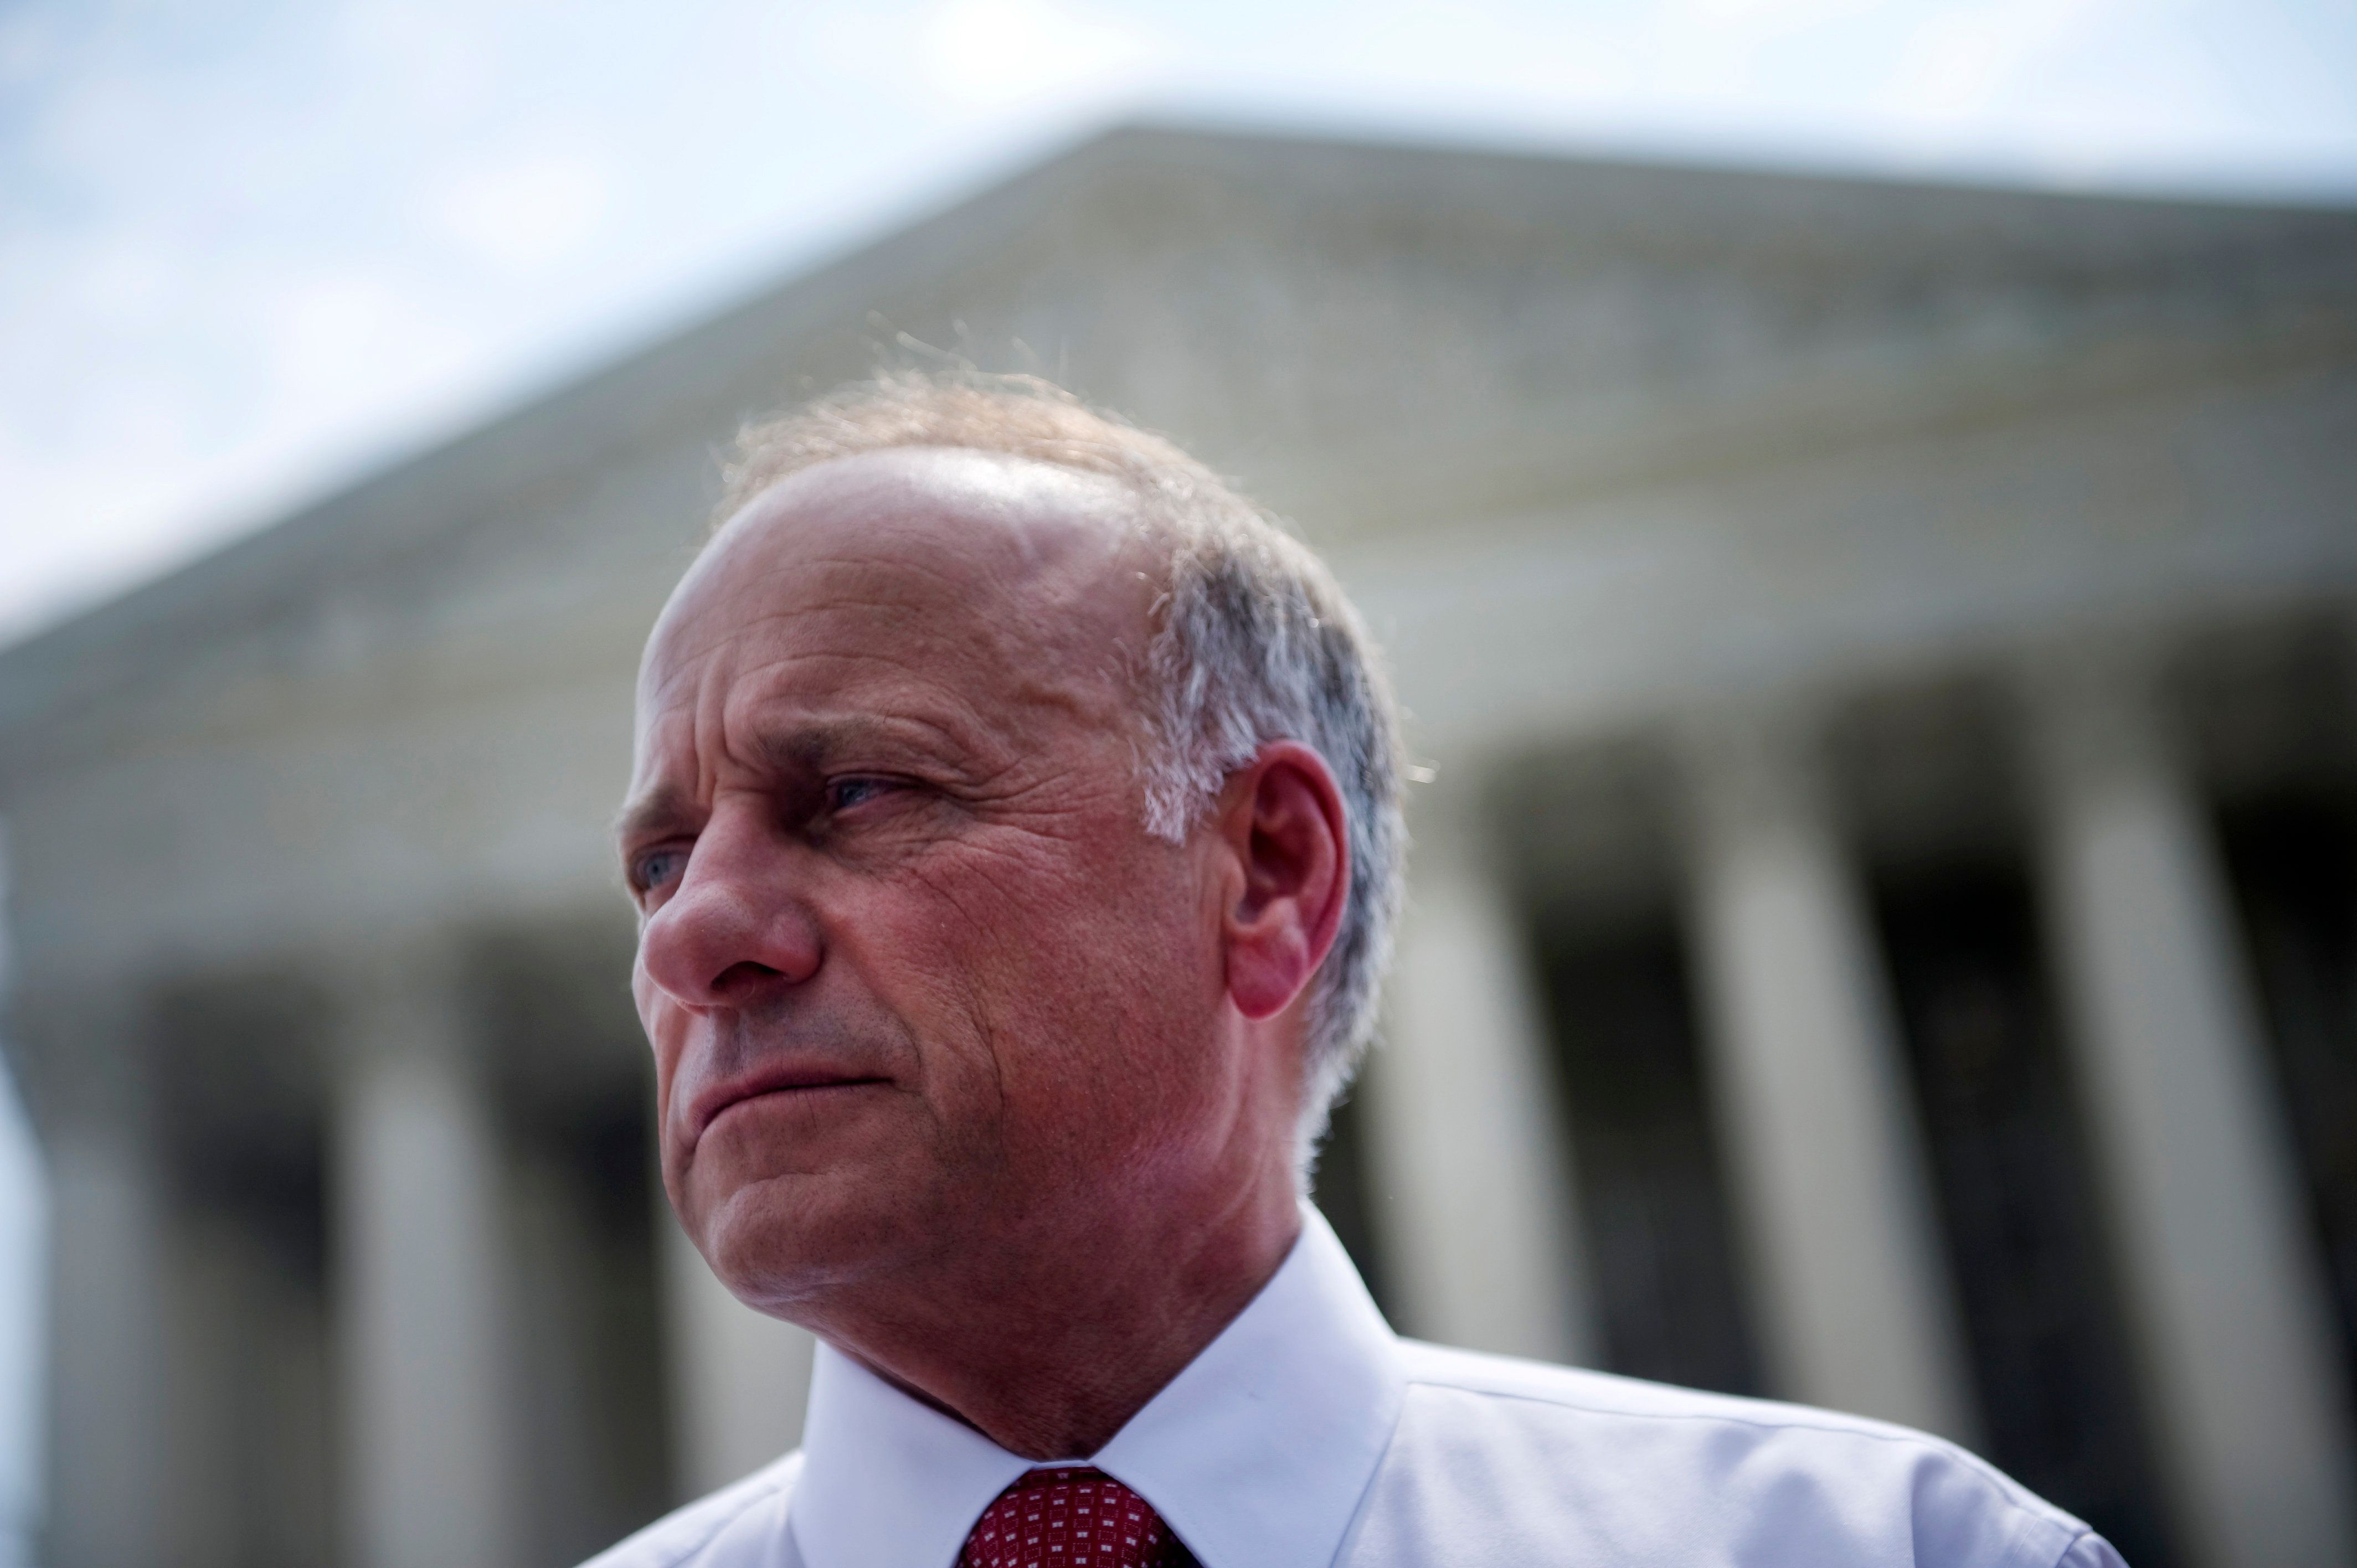 UNITED STATES - JUNE 28: Rep. Steve King, R-Iowa, after speaking to disappointed opponents of the Affordable Care Act. The Supreme Court's decided to uphold the law, voting 5-4. (Photo by Chris Maddaloni/CQ Roll Call)